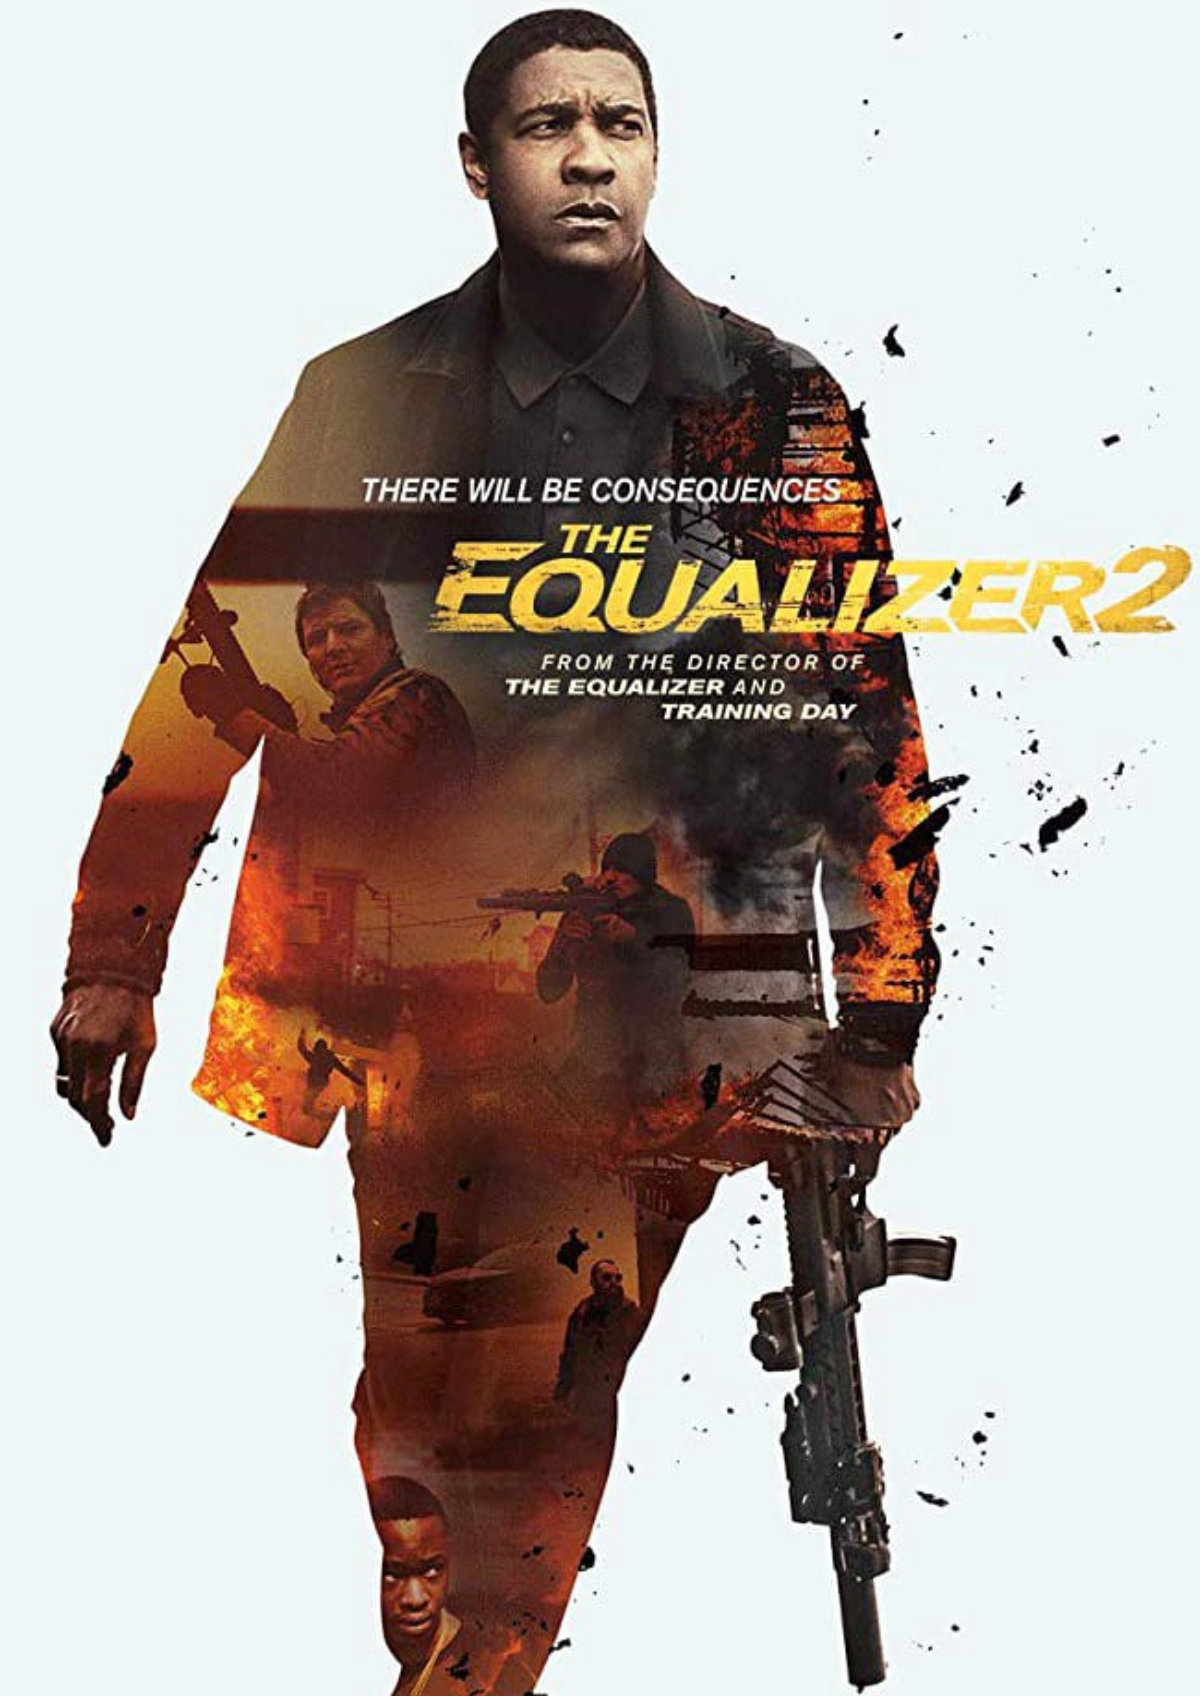 'The Equalizer 2' movie poster